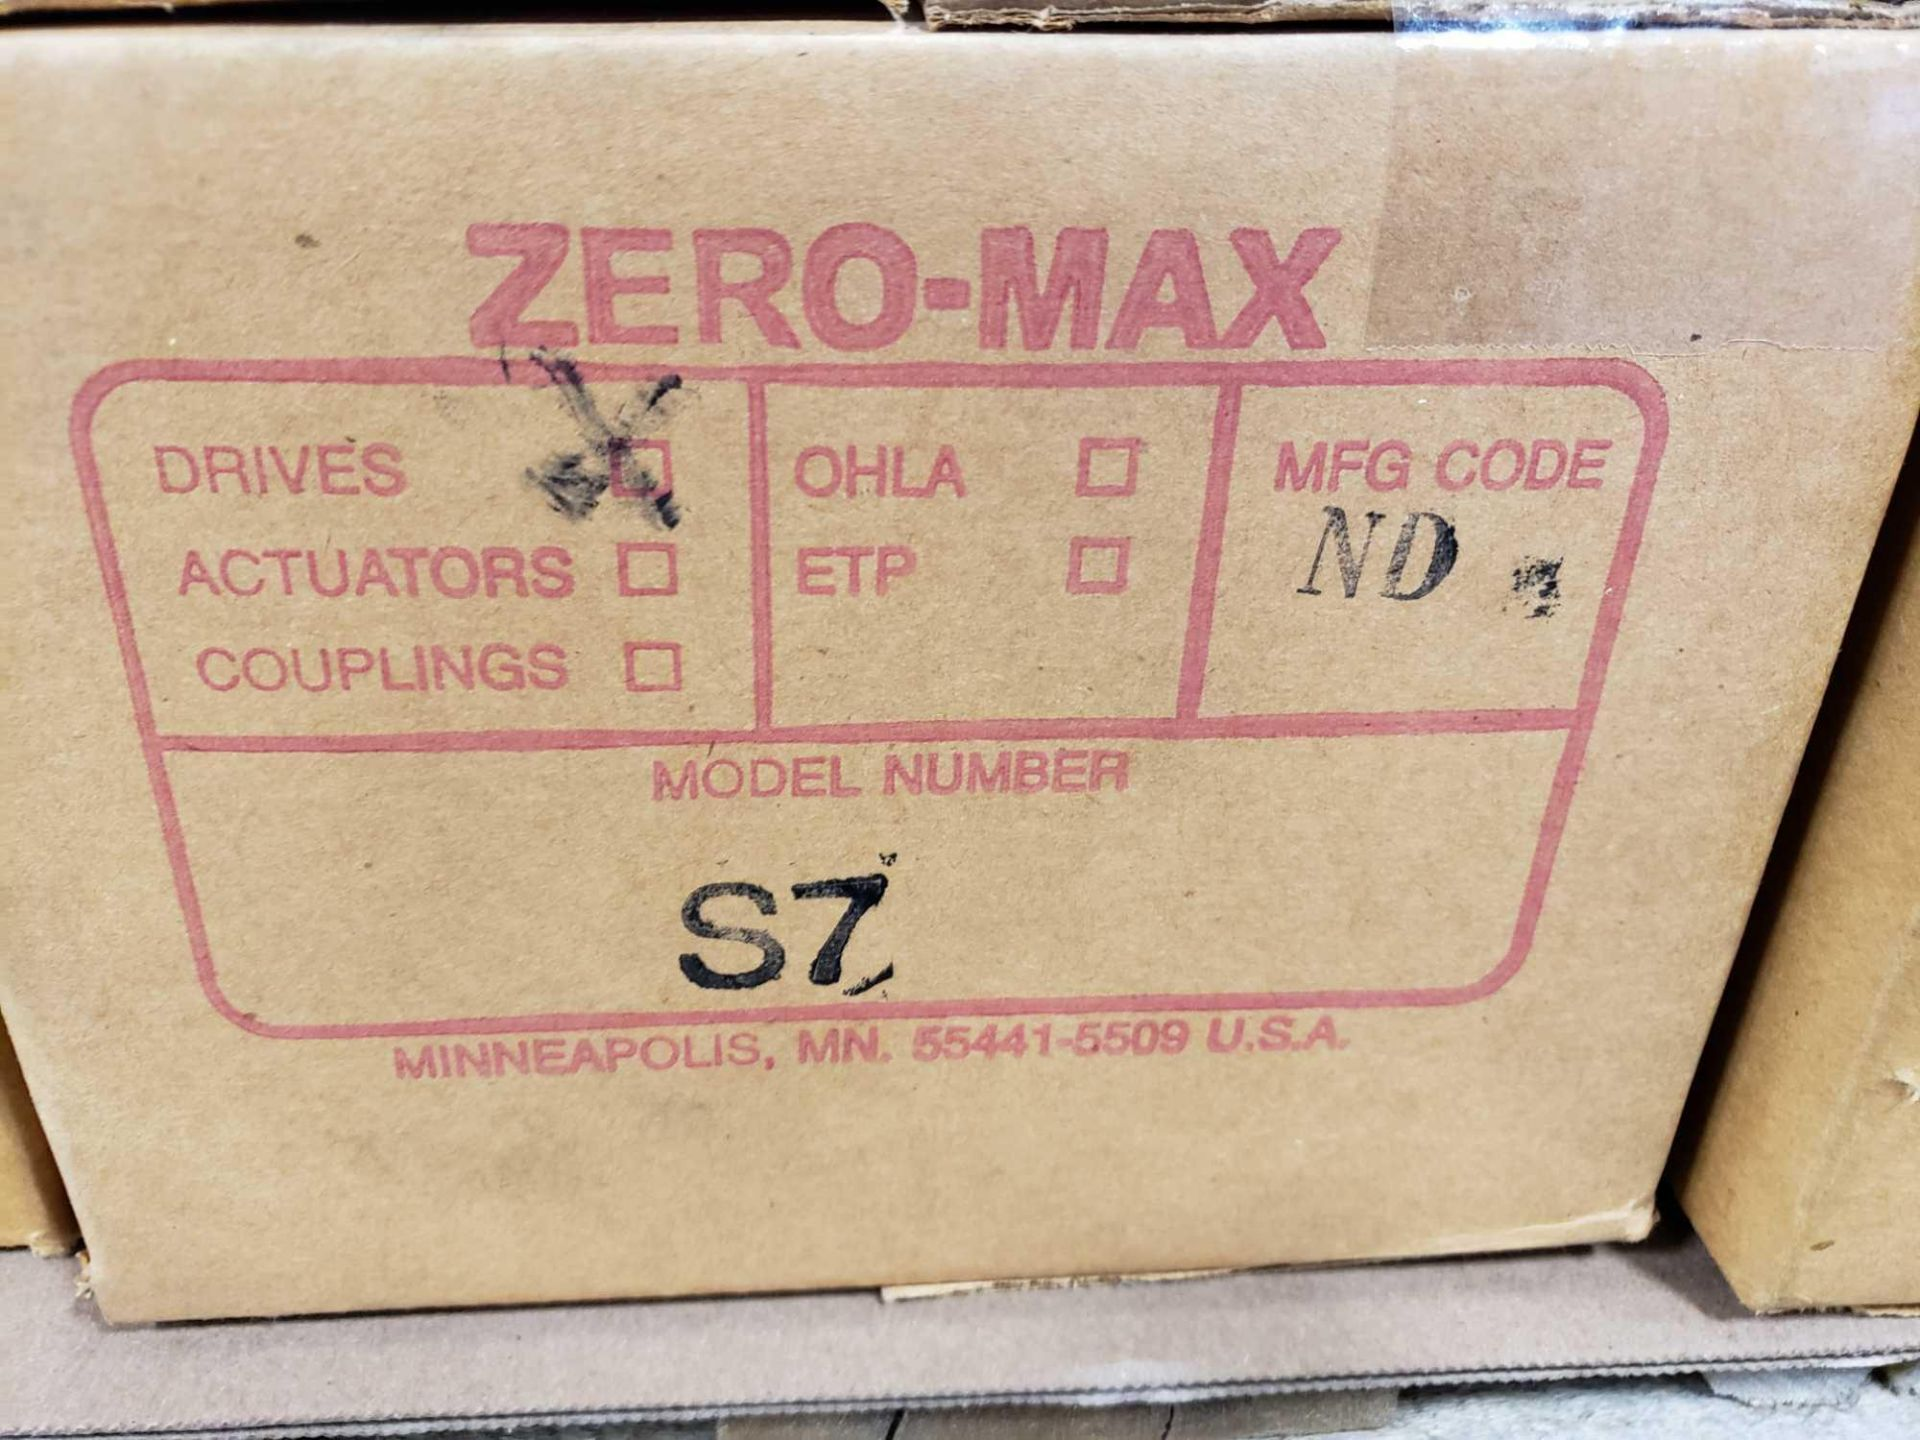 Lot 50 - Zero-max gearhead power block model S7, 0-20 output rotation, 12lb torque, 20:1 range. New in box.